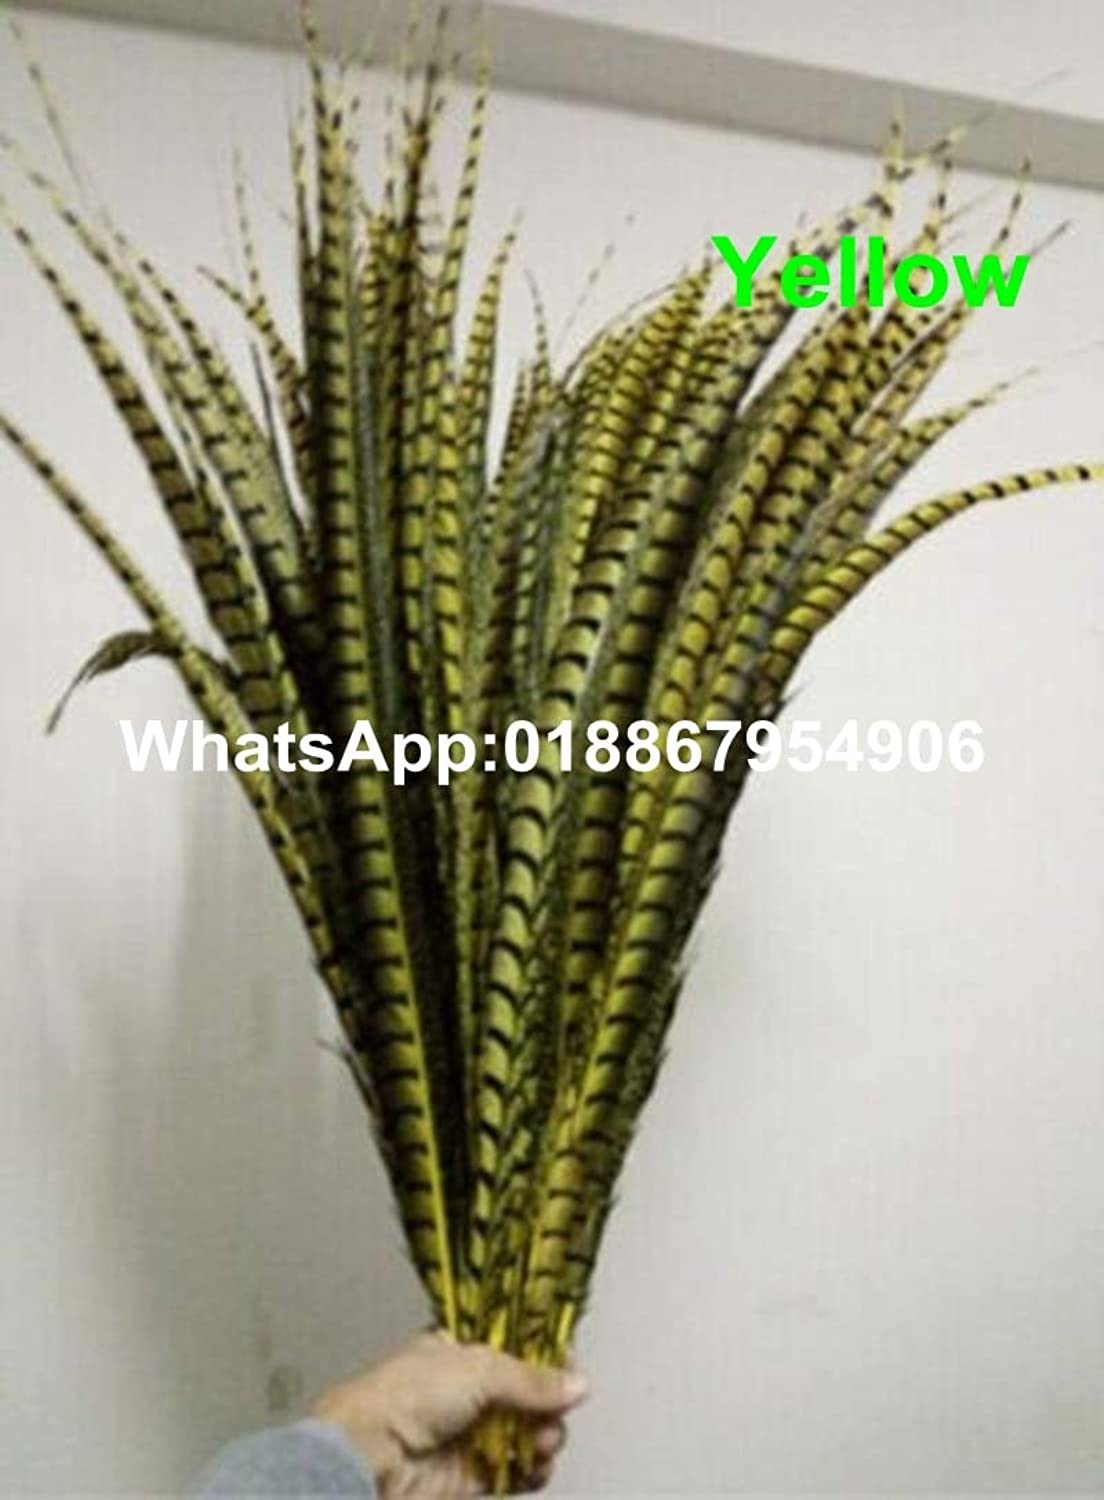 Maslin 50pcs Yellow 3035inch(8090cm) Lady Amherst Pheasant side Tail Feathers for costumes